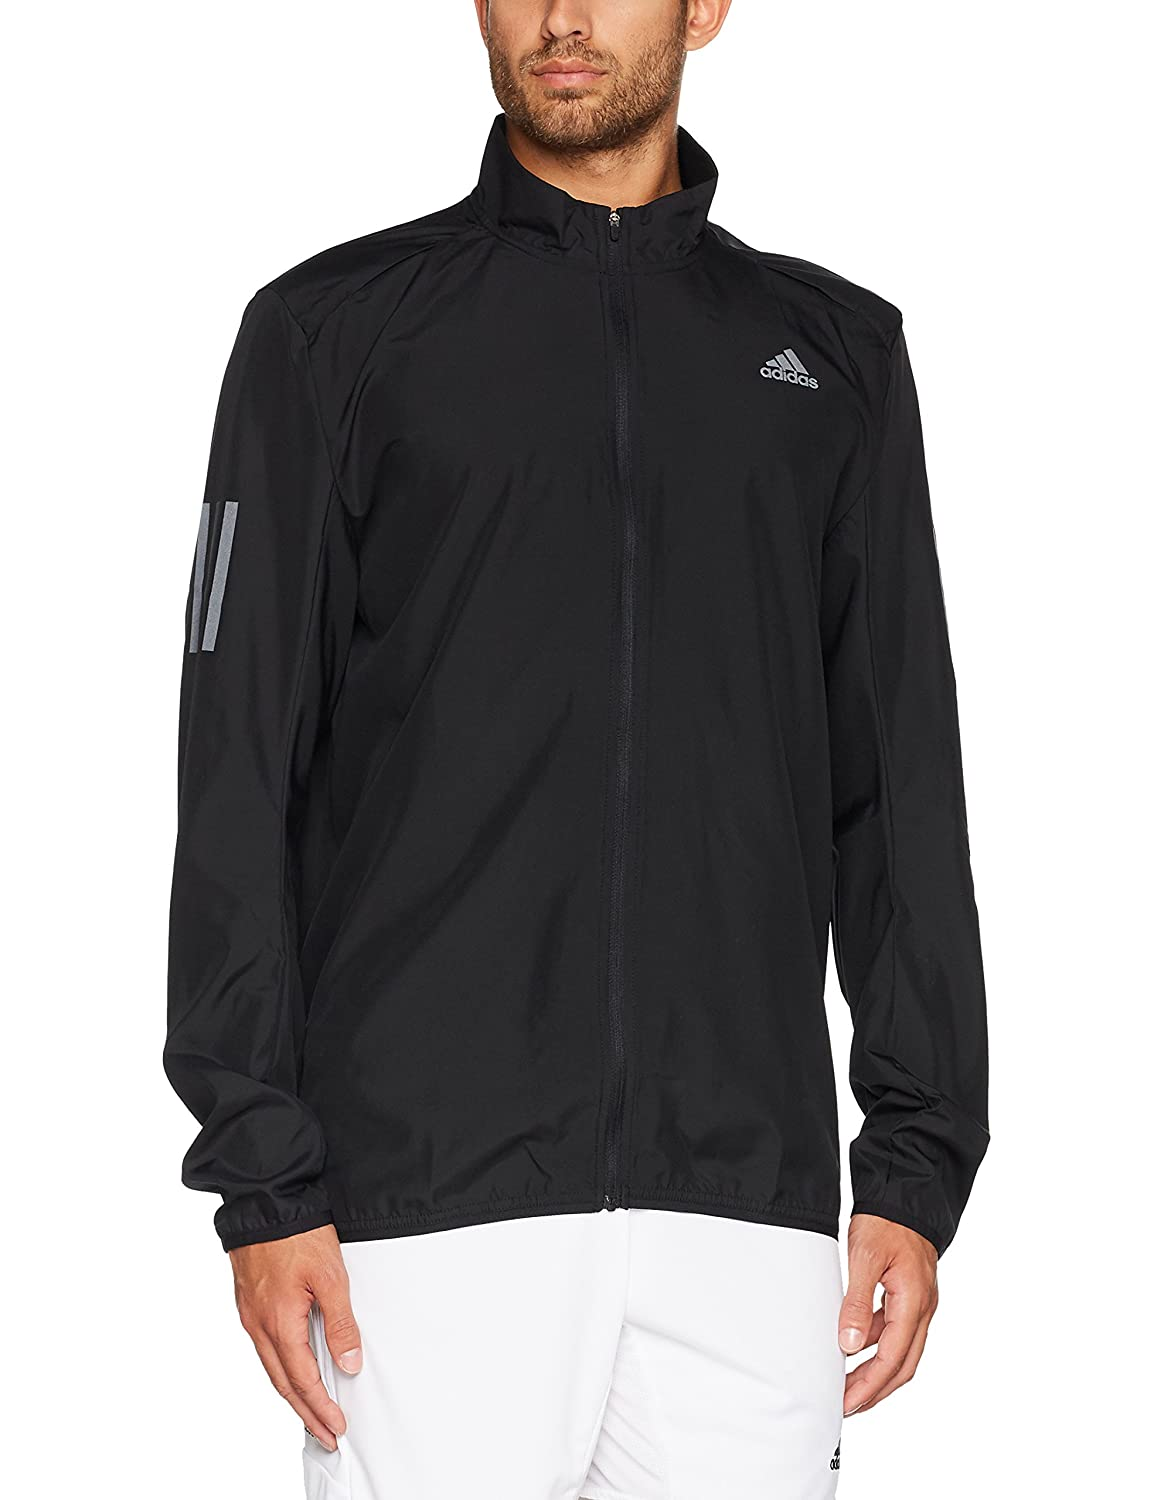 adidas Men's Rs Wind M Jacket